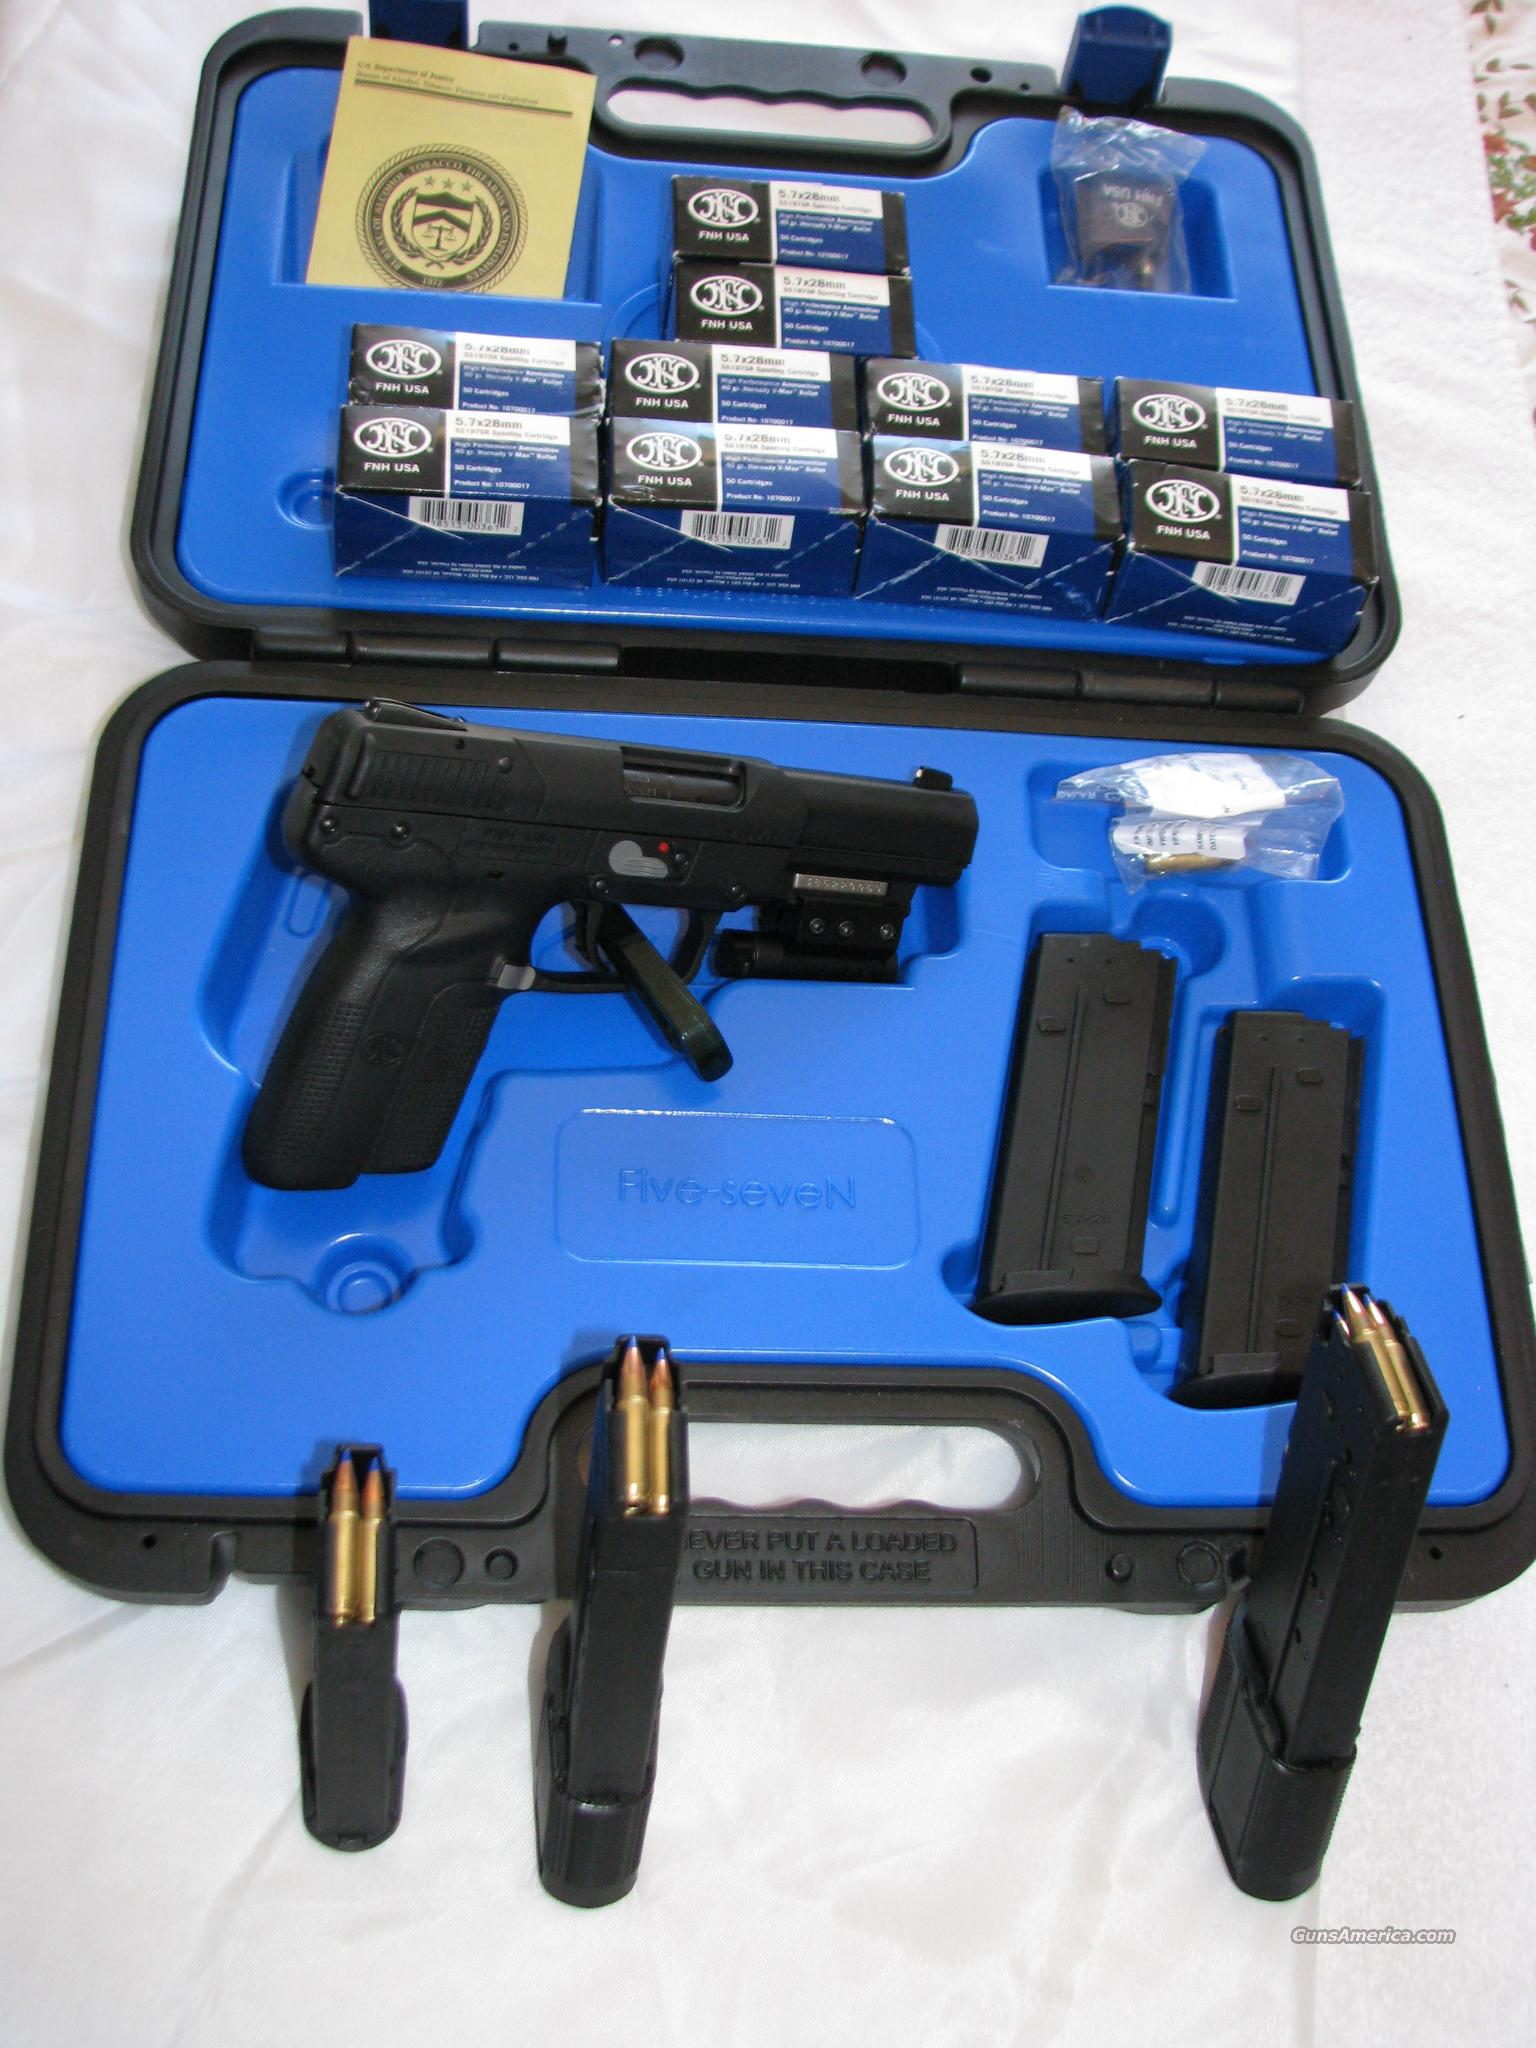 Promag Magazine Fn Five Seven 5 7x28mm Fn 30 Ro For Sale